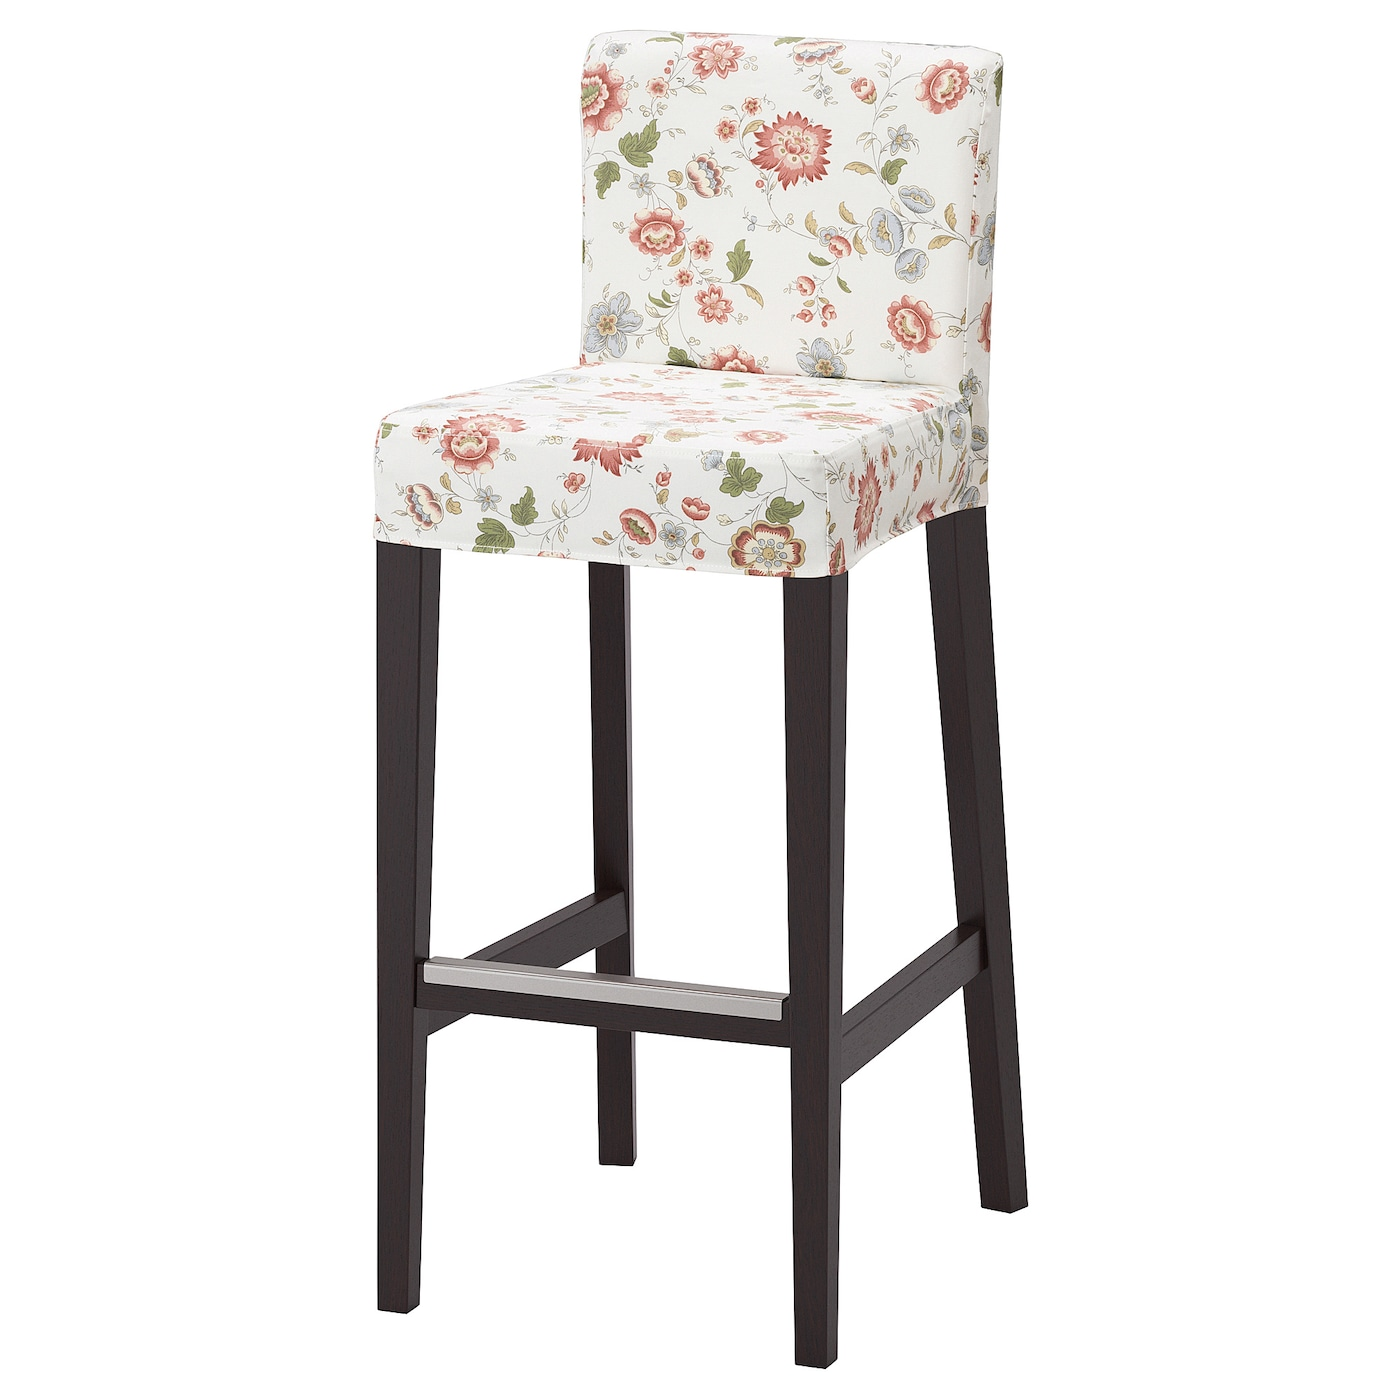 IKEA HENRIKSDAL bar stool with backrest The soft fabric cover both looks and feels comfy.